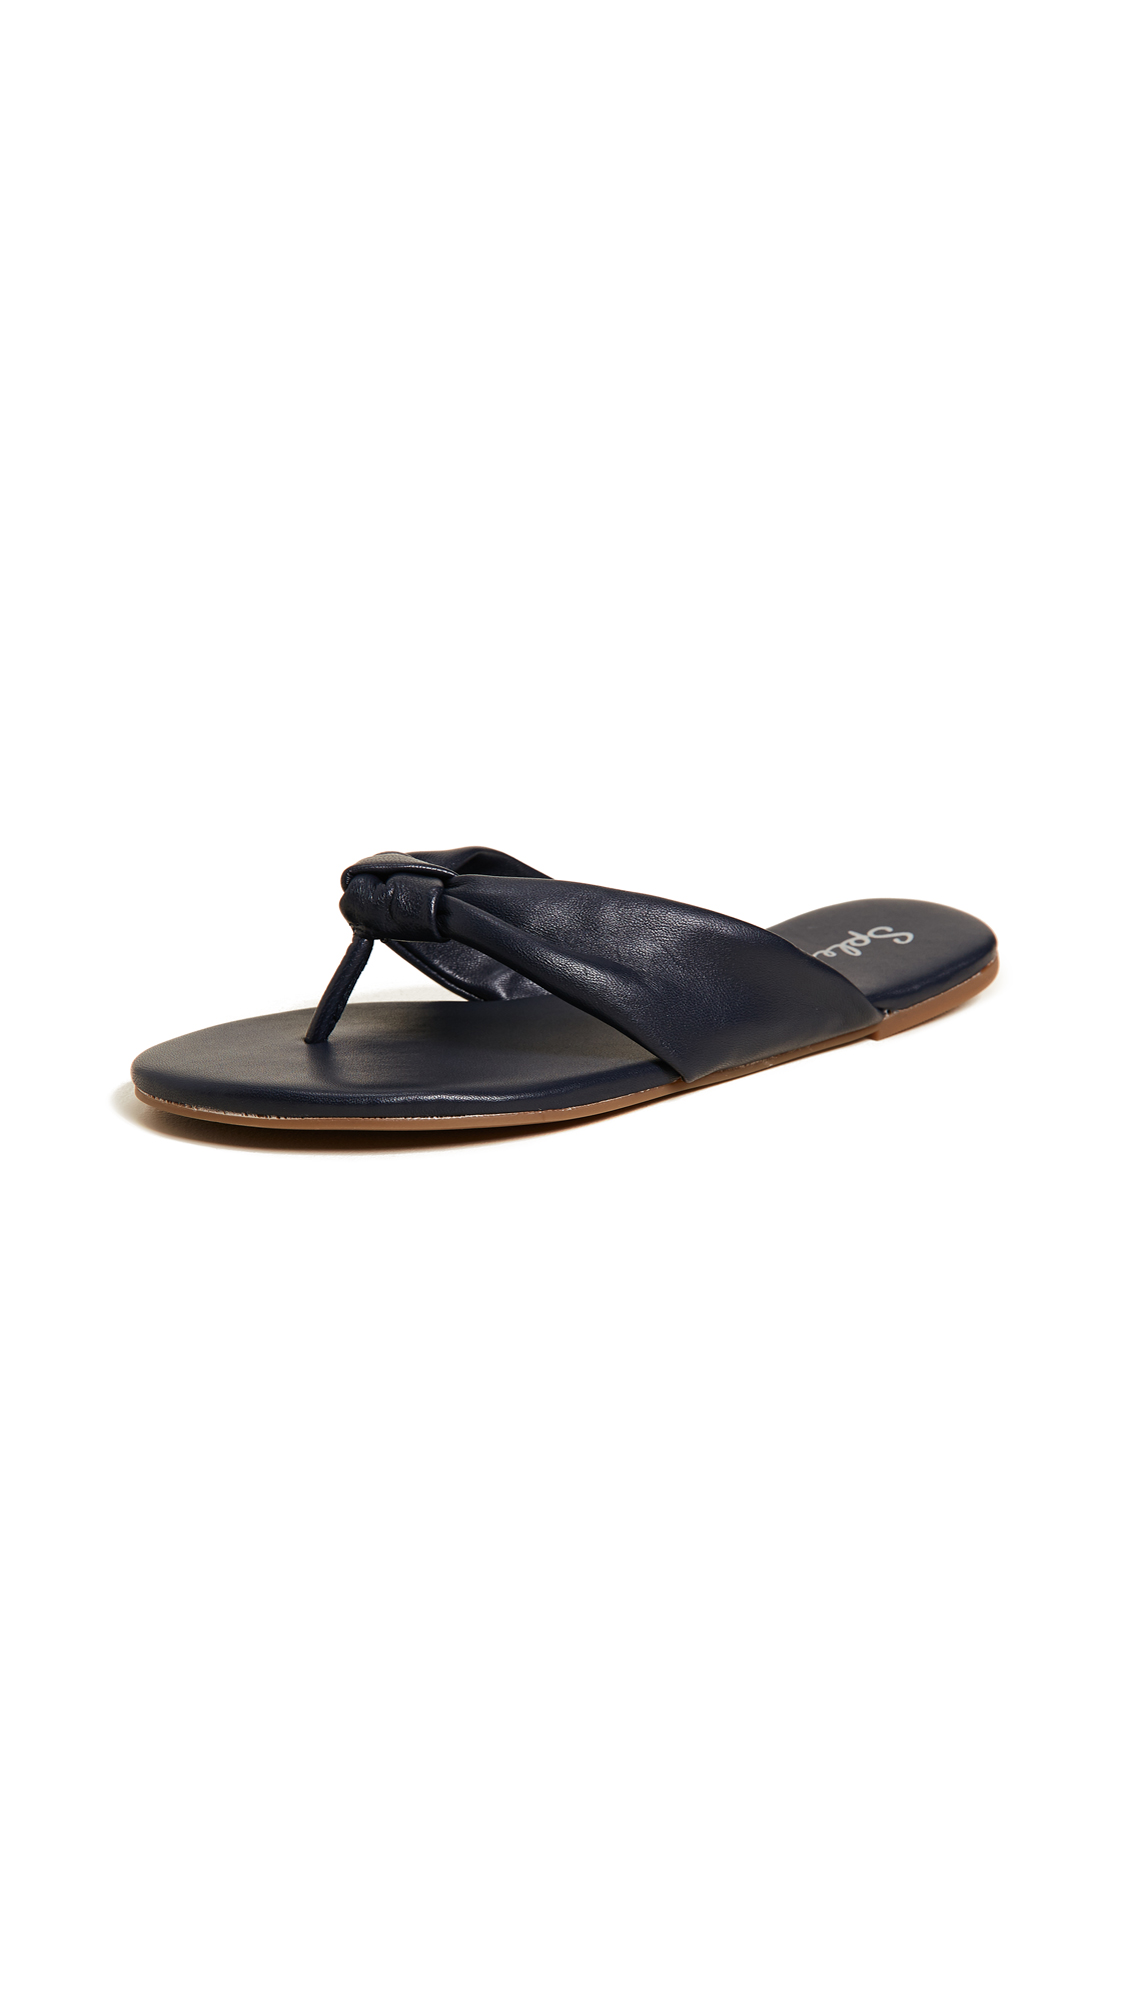 Splendid Bridgette Sandals - Navy